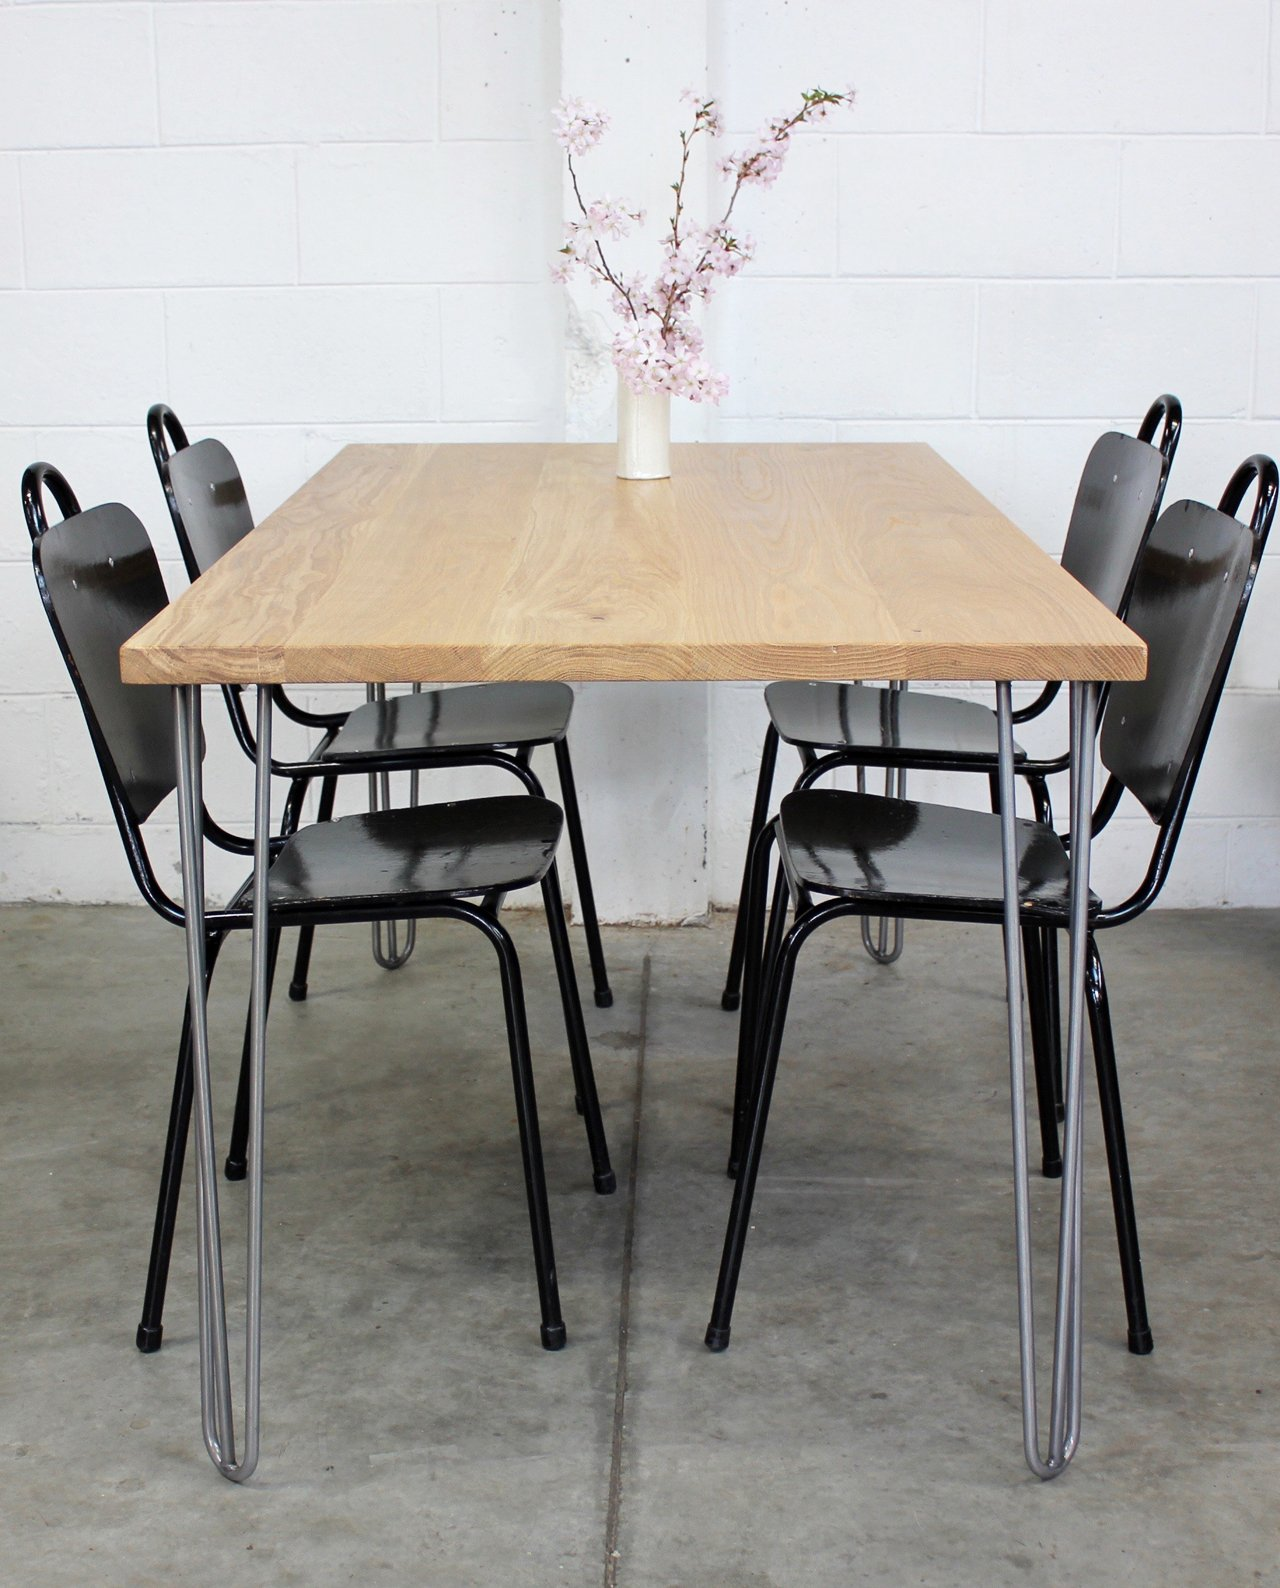 New Zealand Made Oak Dining Table w Mid Century Inspired  : Dining table 1 from loftmotif.co.nz size 1280 x 1588 jpeg 1288kB